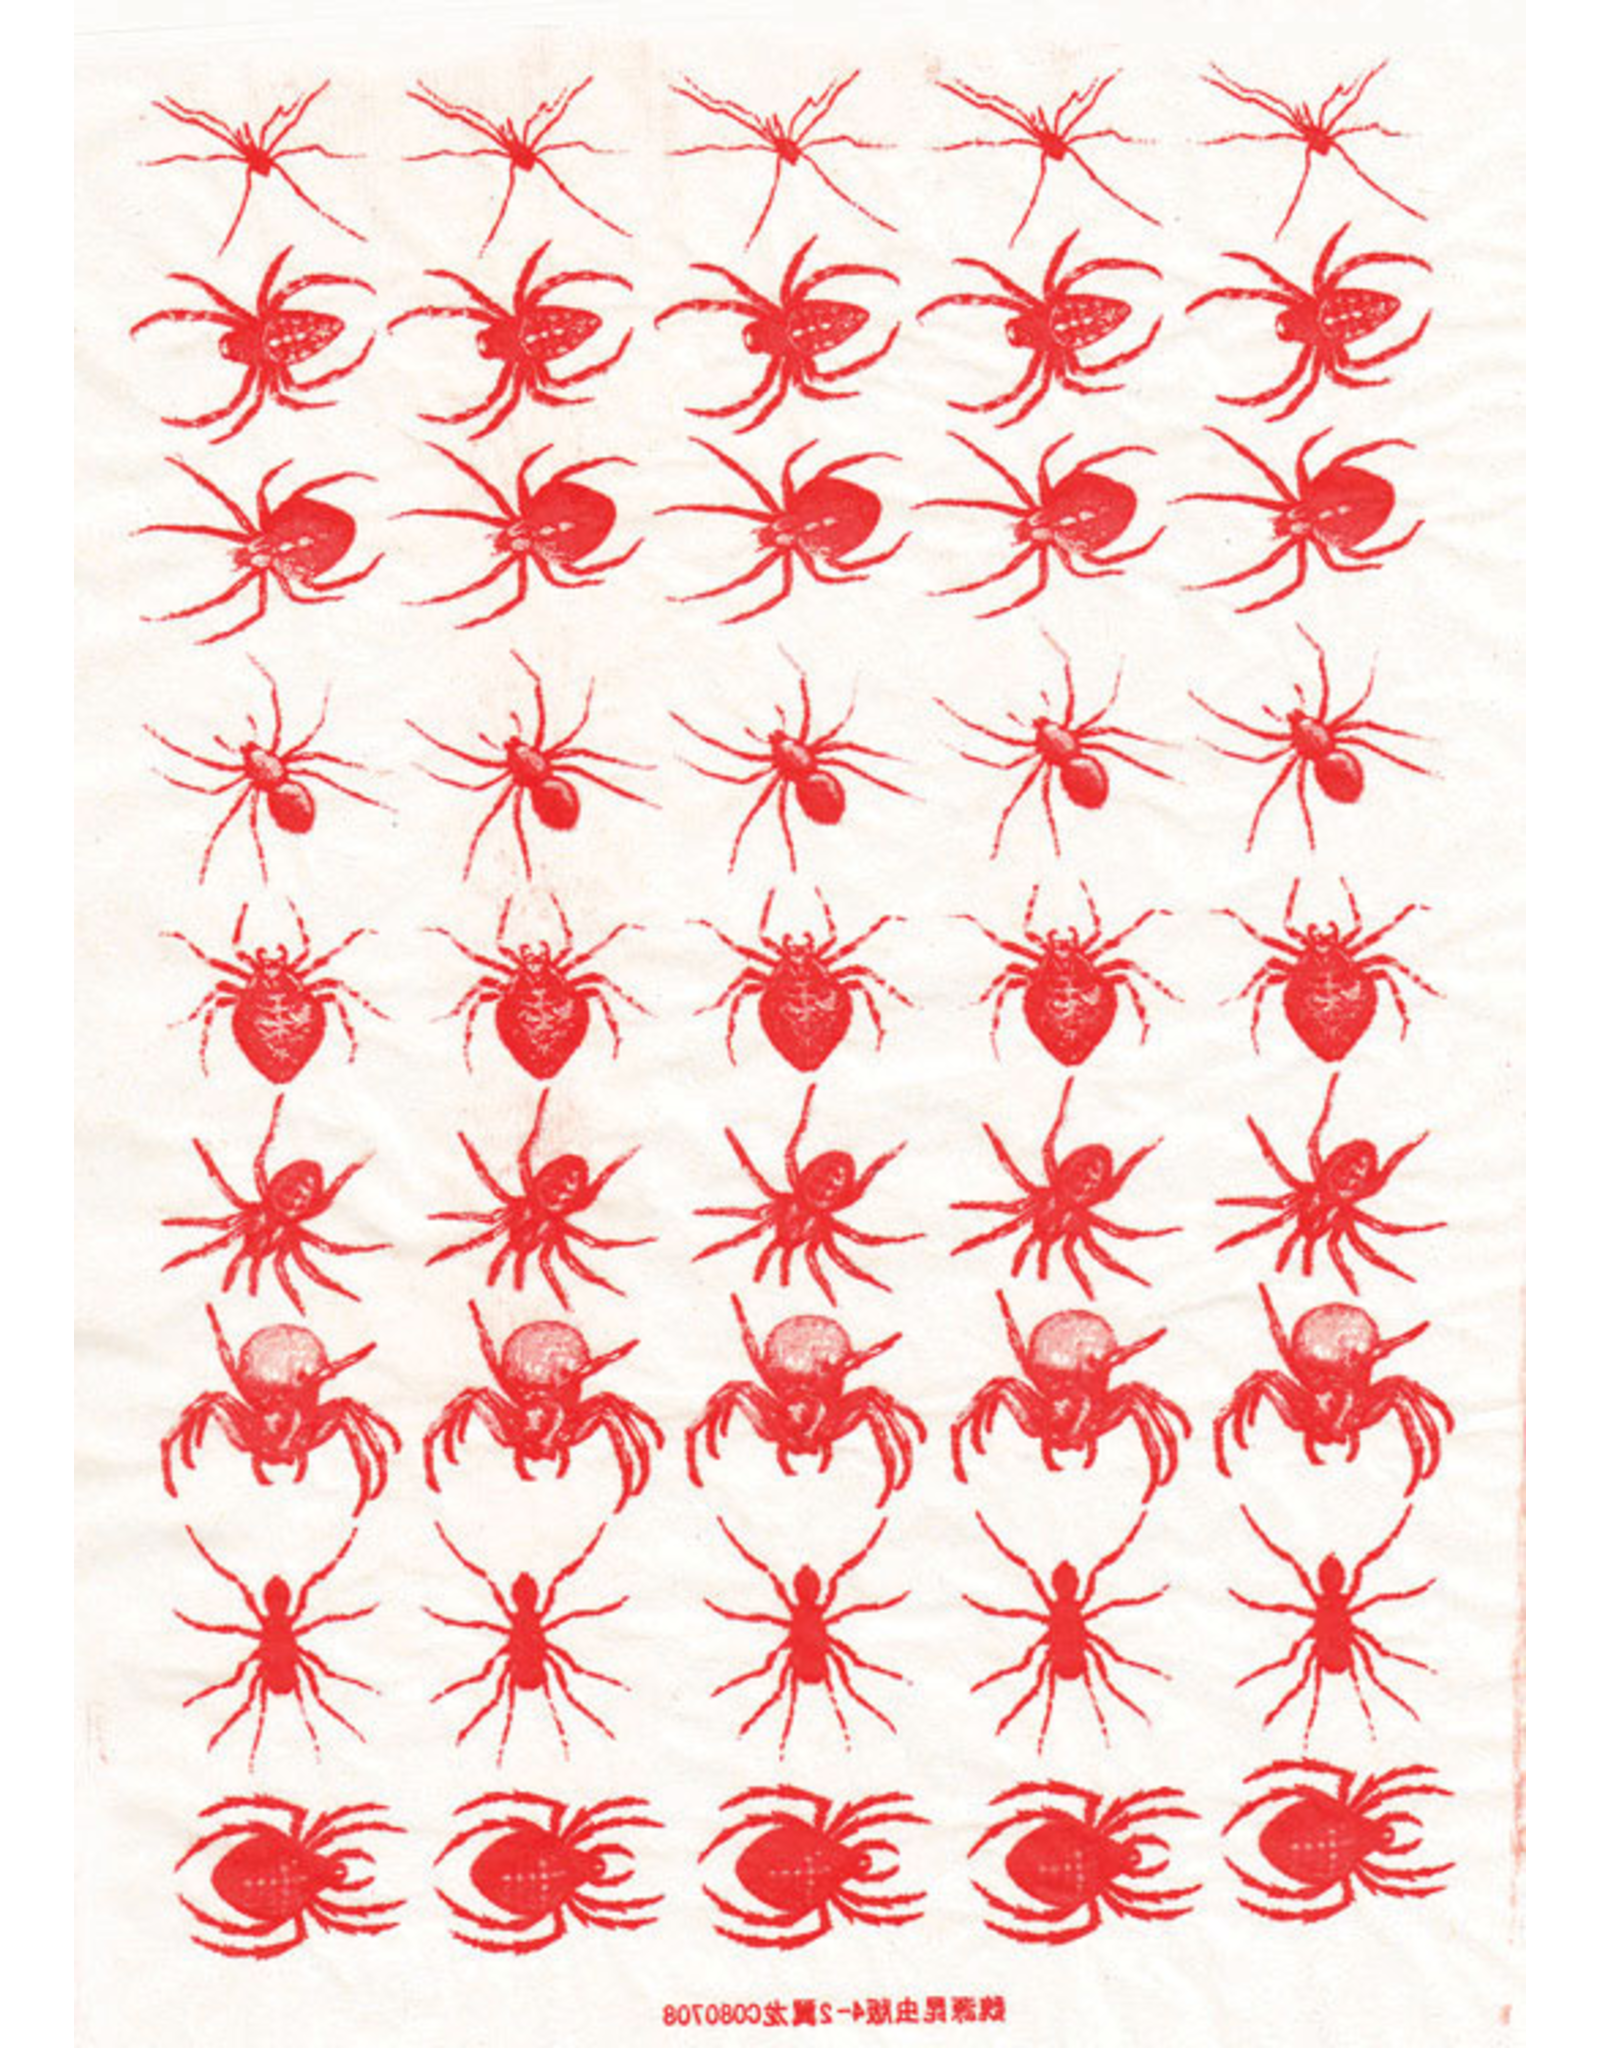 Sanbao Insects decal 1